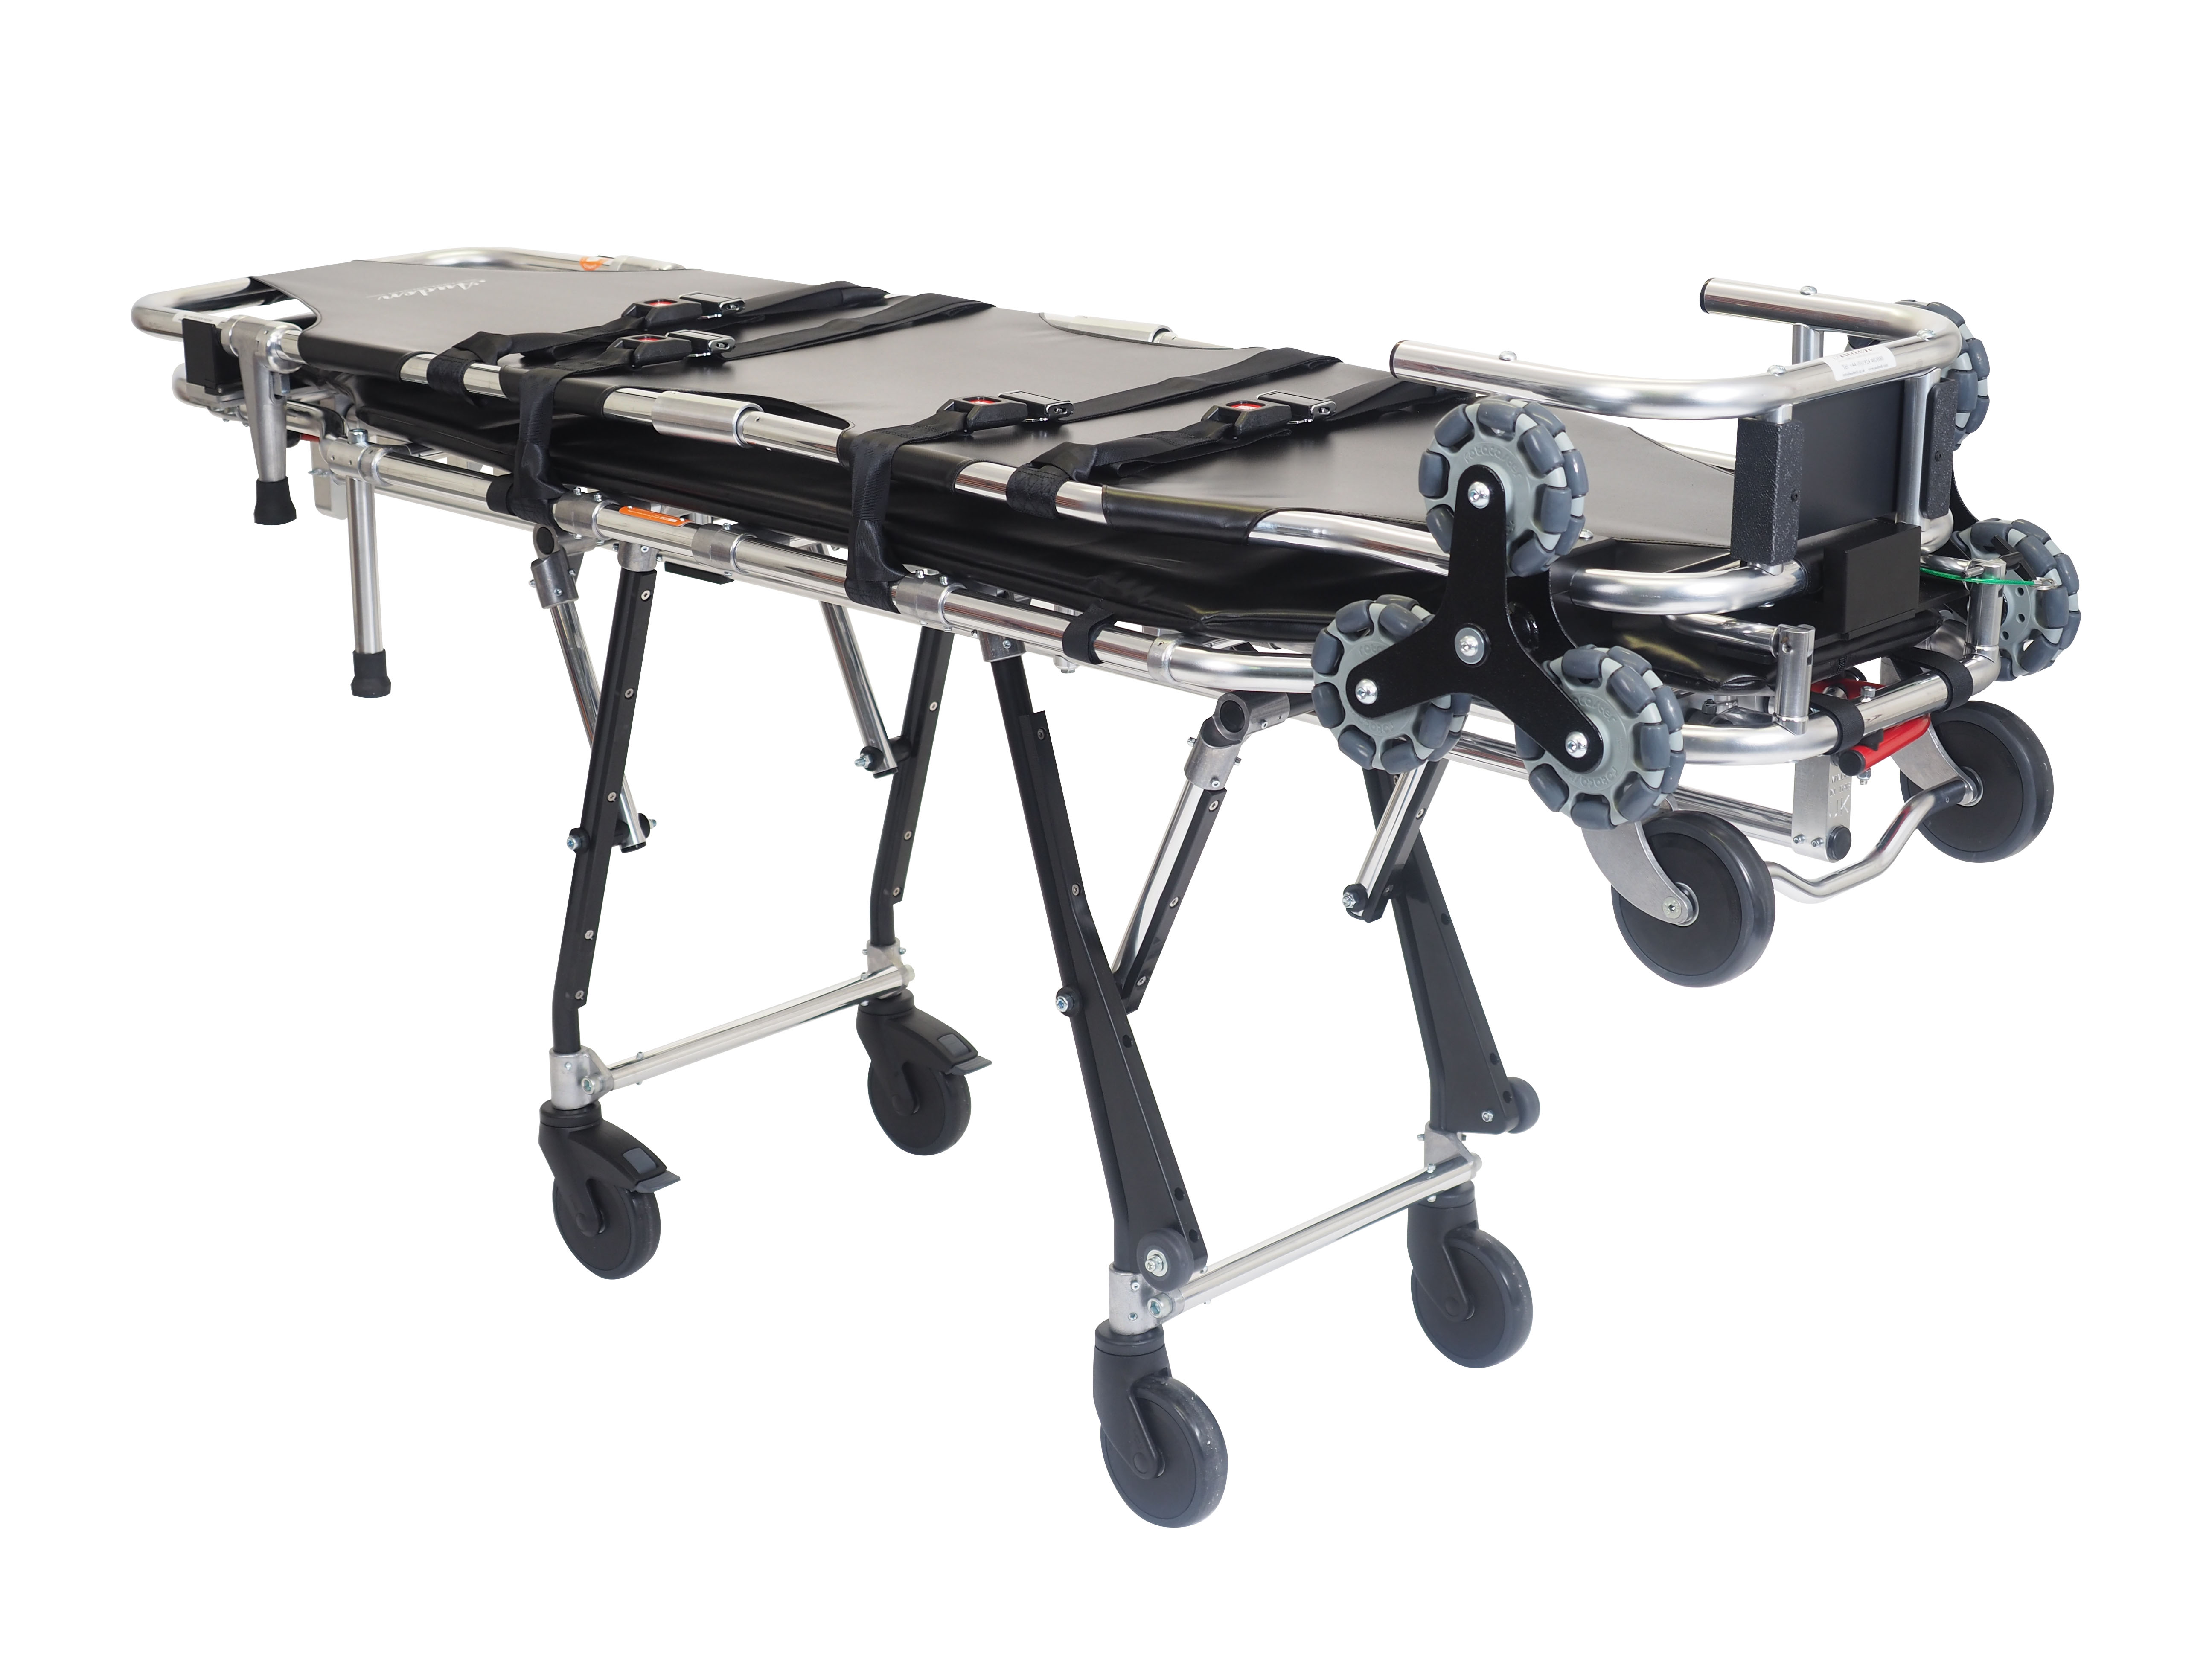 Auden Funeral Supplies dedicated suppliers to the funeral